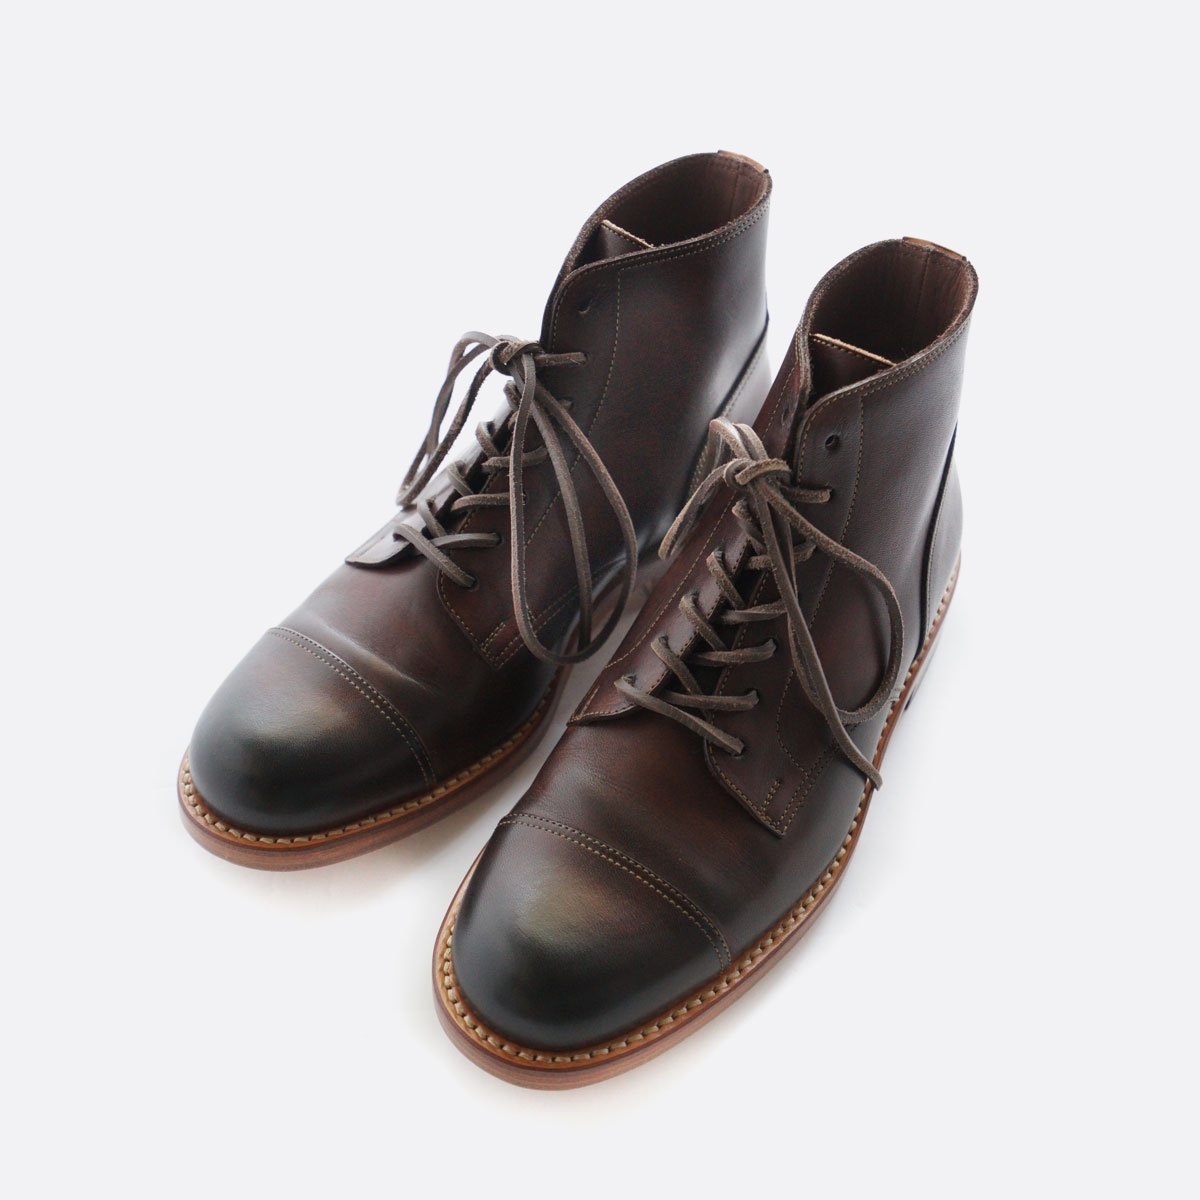 MOTO STRAIGHT TIP Lace-up BOOTS #1500 (BROWN)3